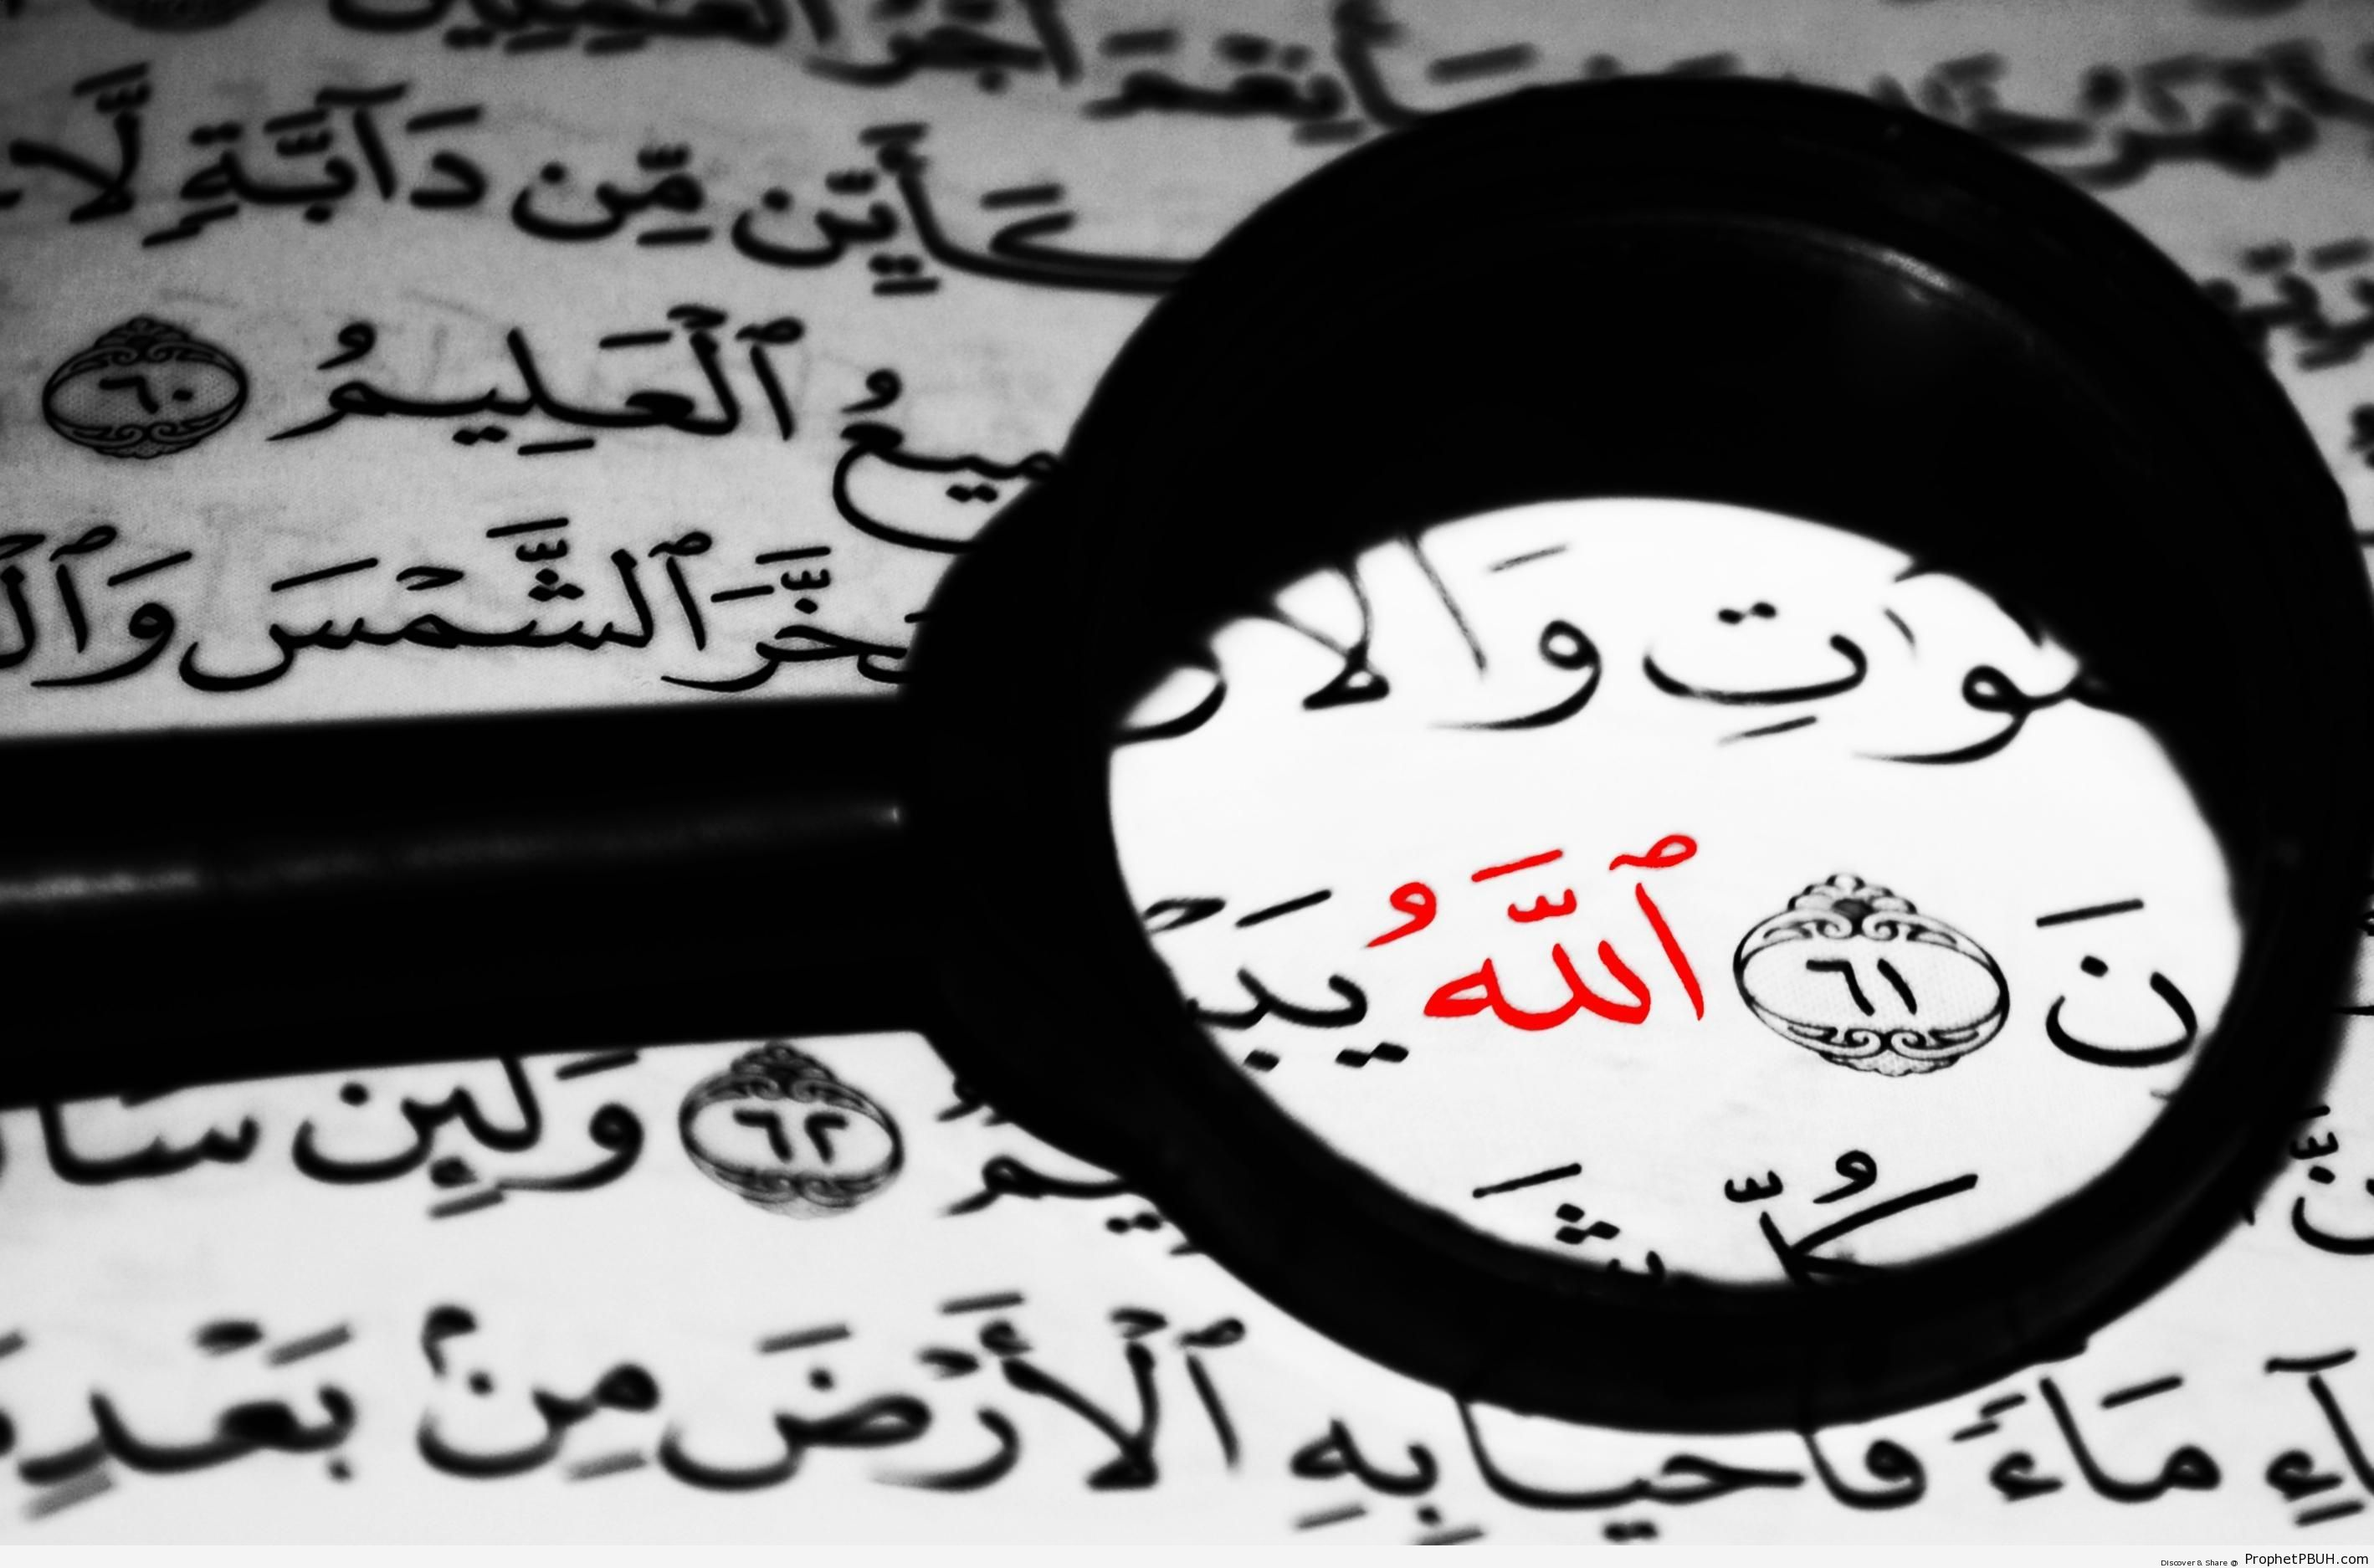 Allah Calligraphy in Red on Surat al-Ankabut Photo - Allah Calligraphy and Typography